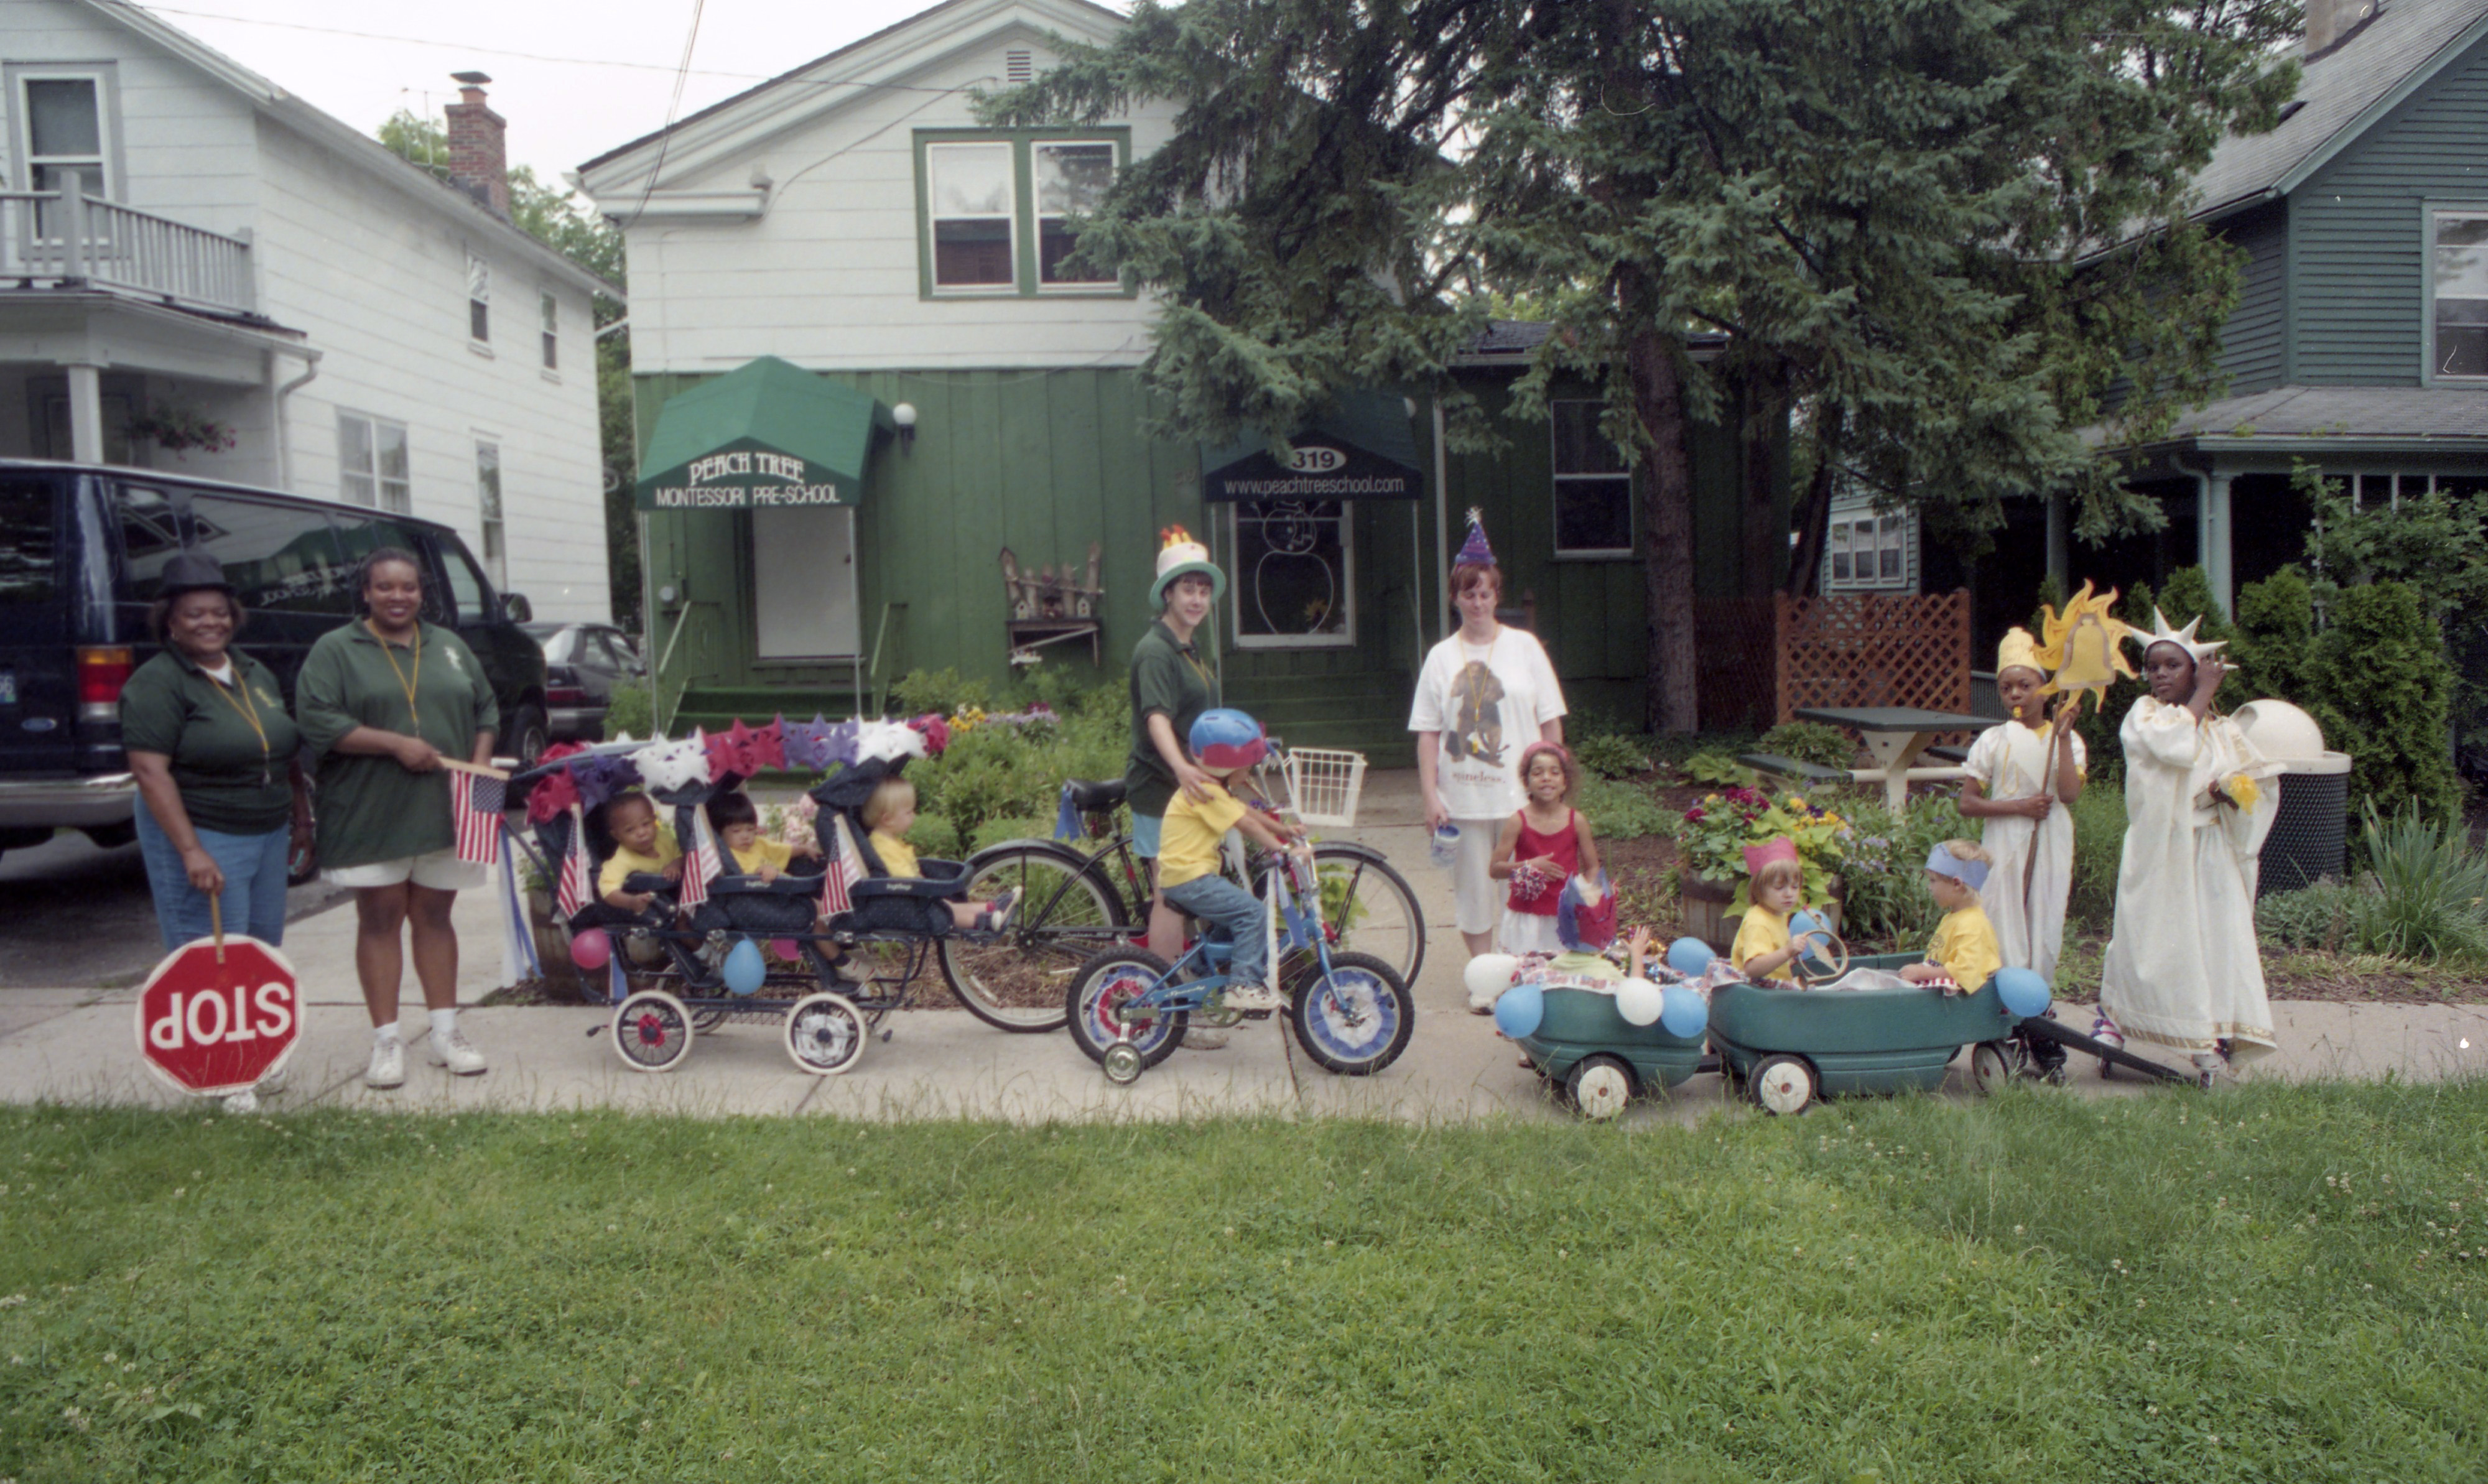 The Camp Peachy Pre-Independence Day Parade Begins In Front Of Peachtree Montessori School, July 2000 image